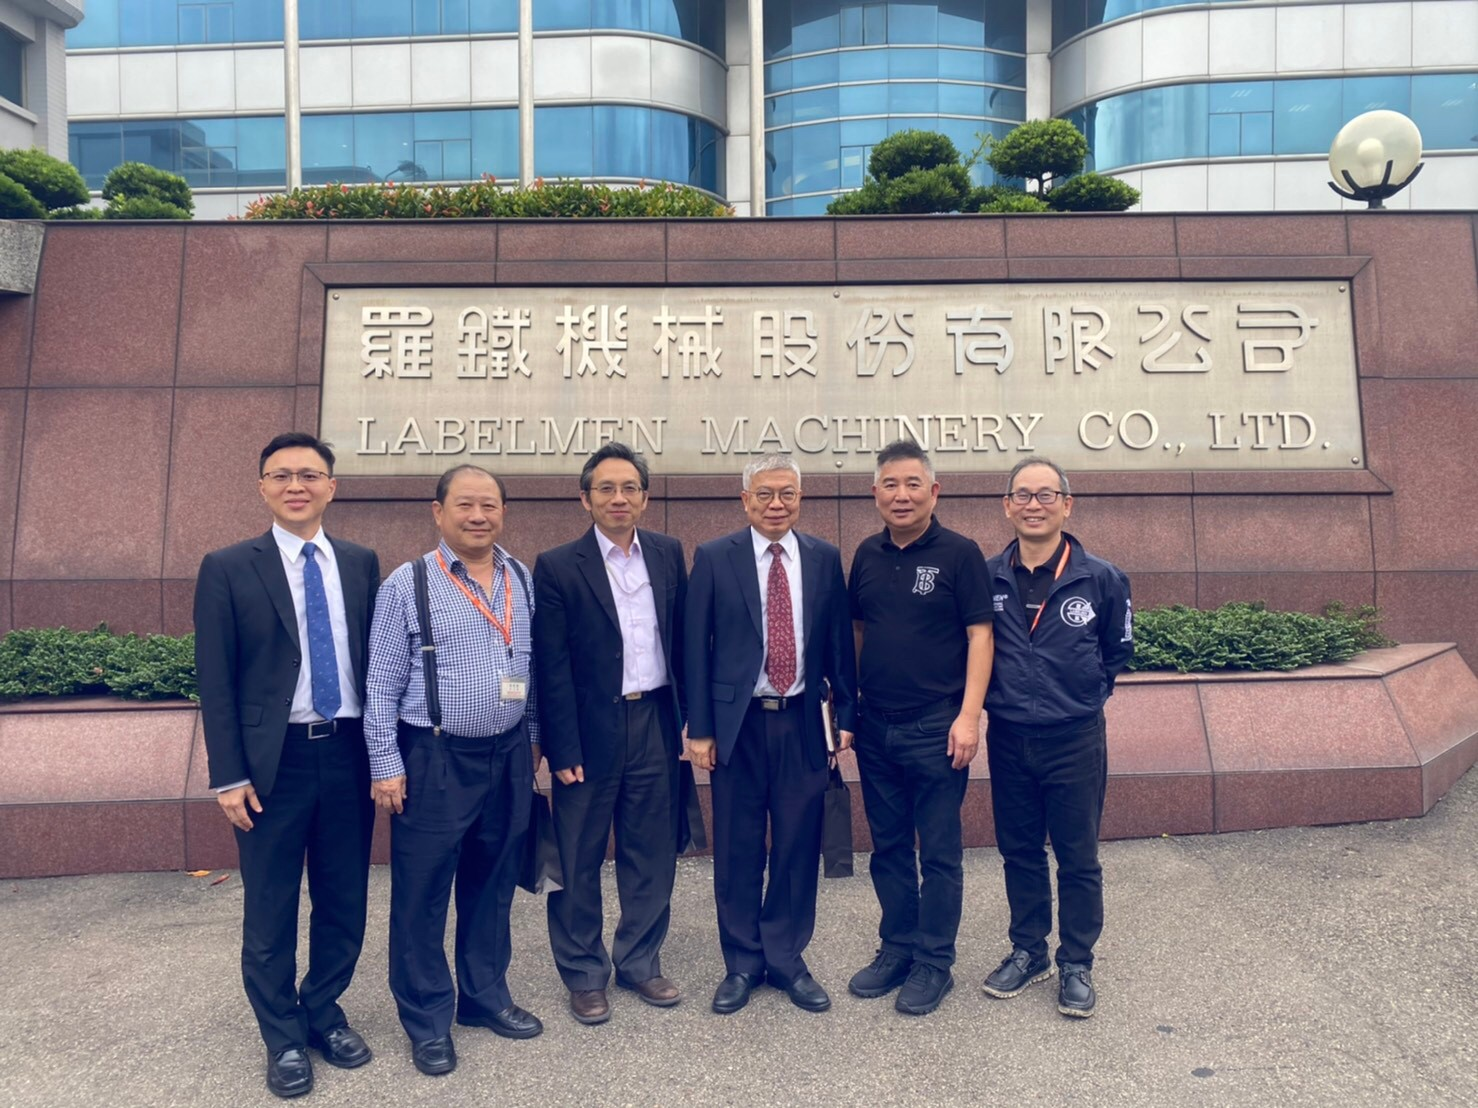 President Wang of National Taipei University of Technology, Taipei Tech visited LABELMEN